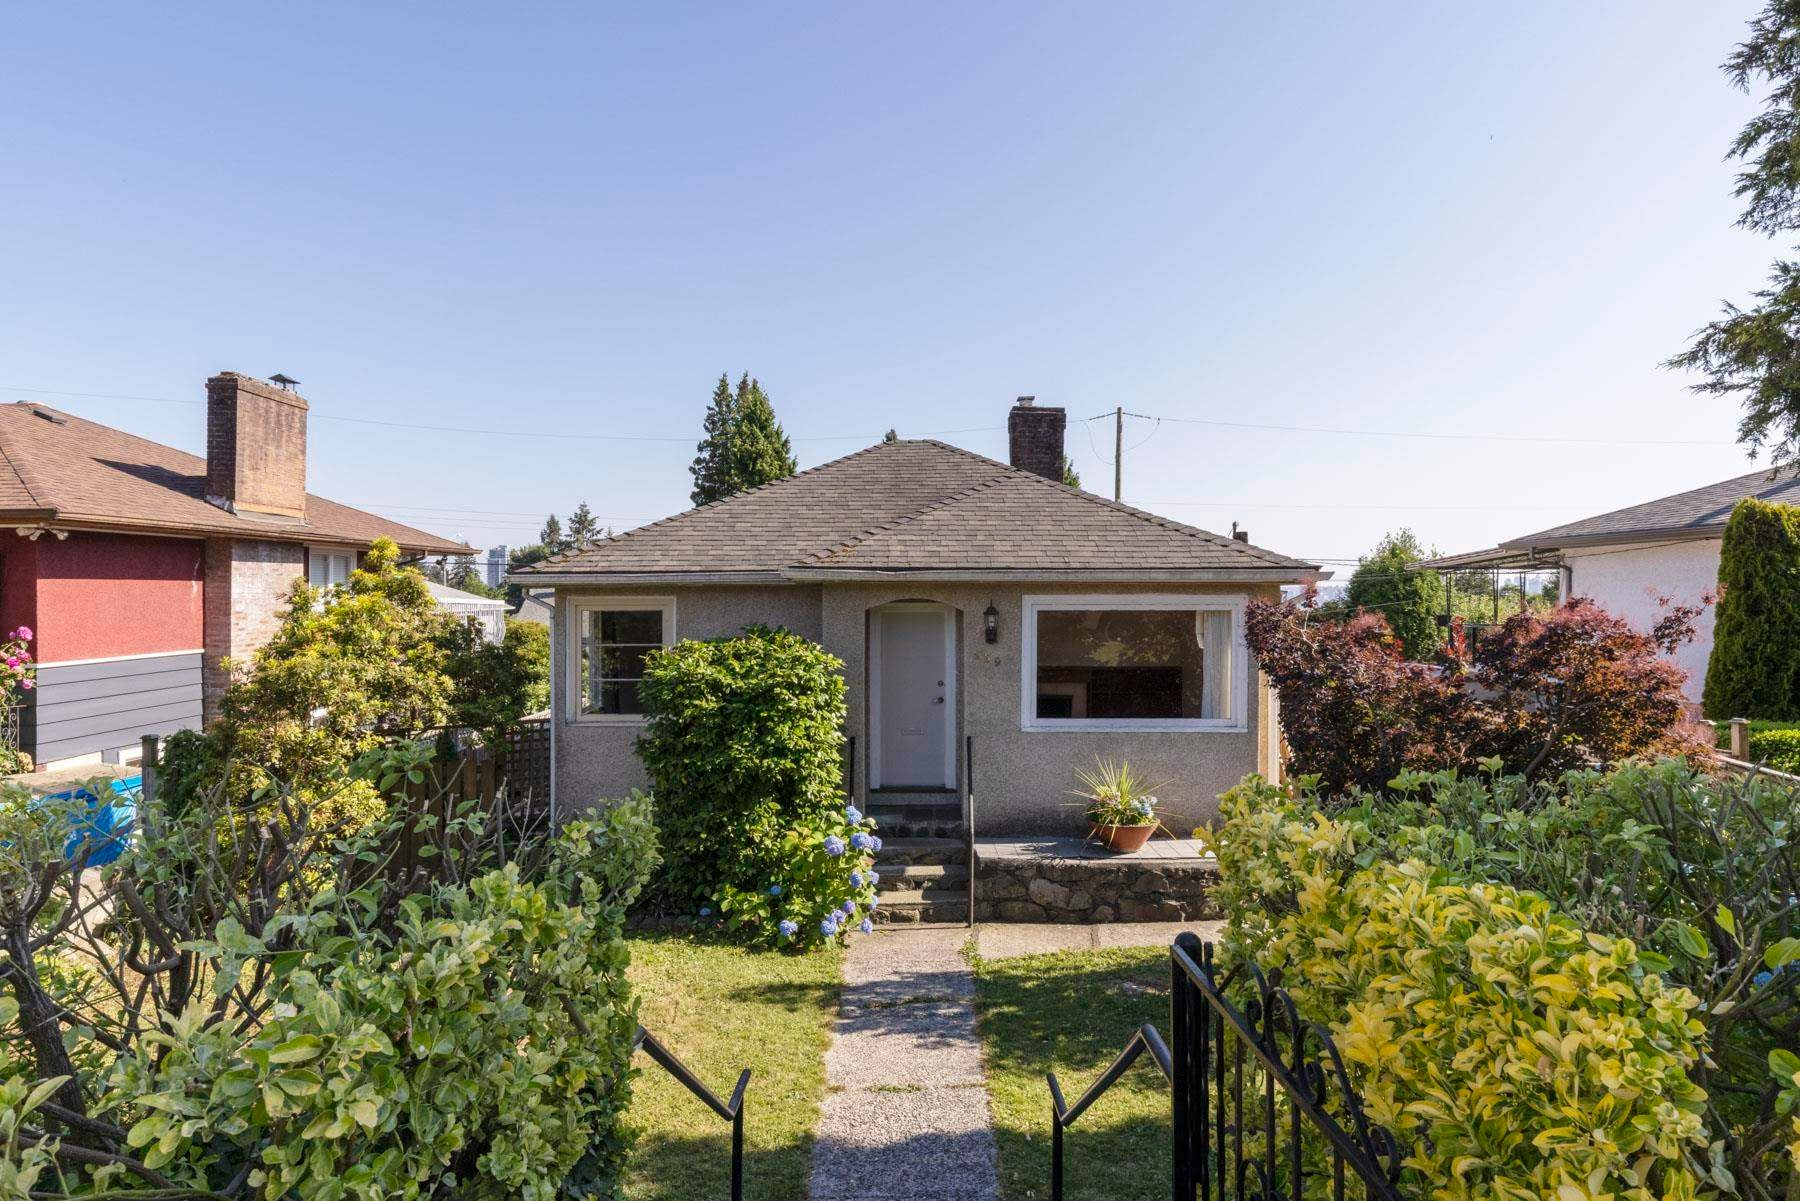 259 W 26TH STREET - Upper Lonsdale House/Single Family for sale, 3 Bedrooms (R2598485) - #1